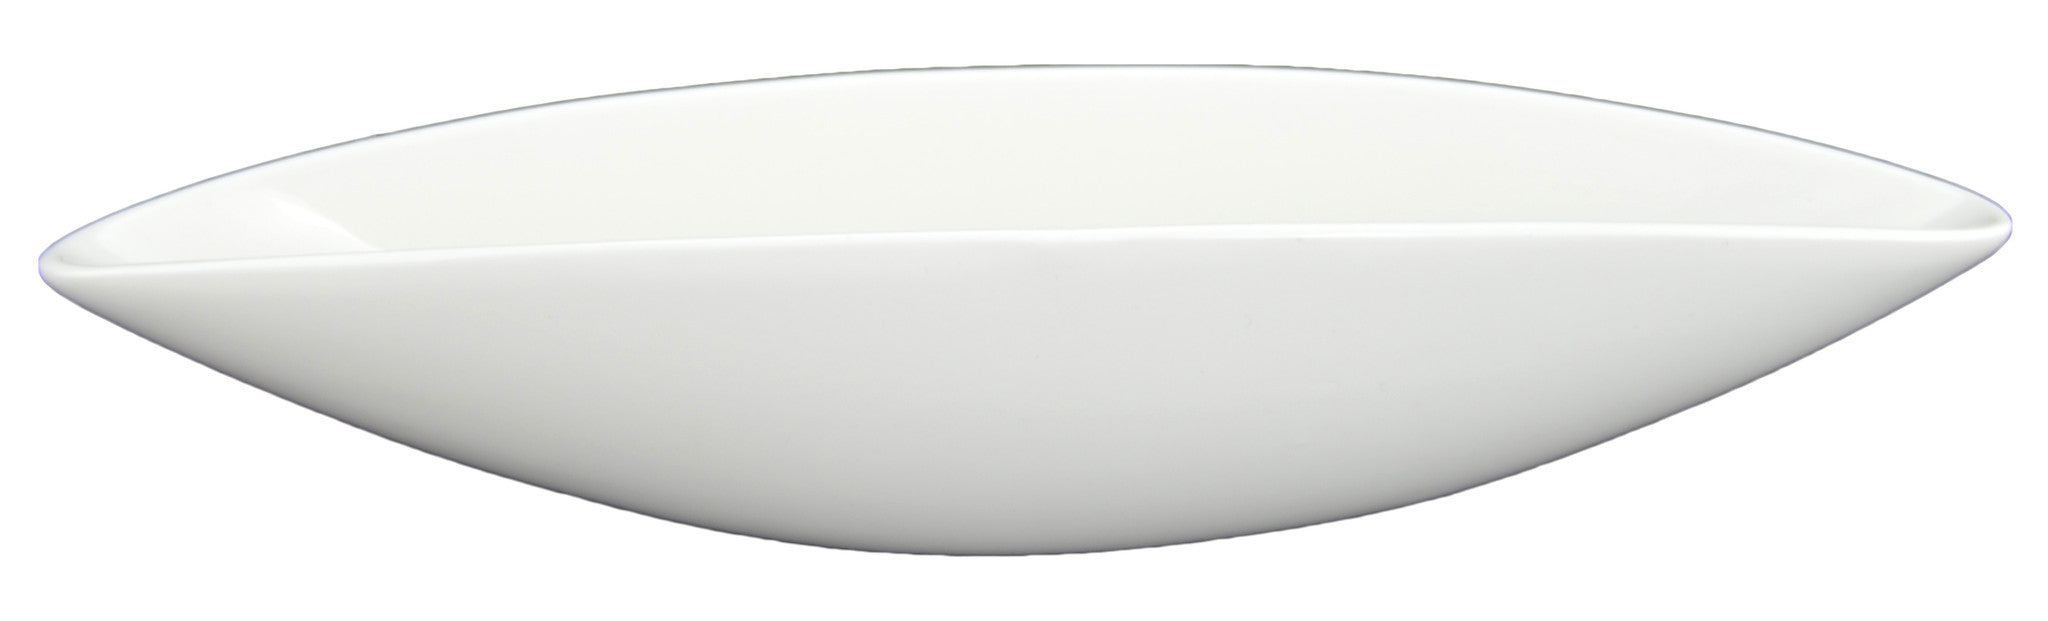 Du Lait Serving Boat Small By Tannex Kitchen Baron